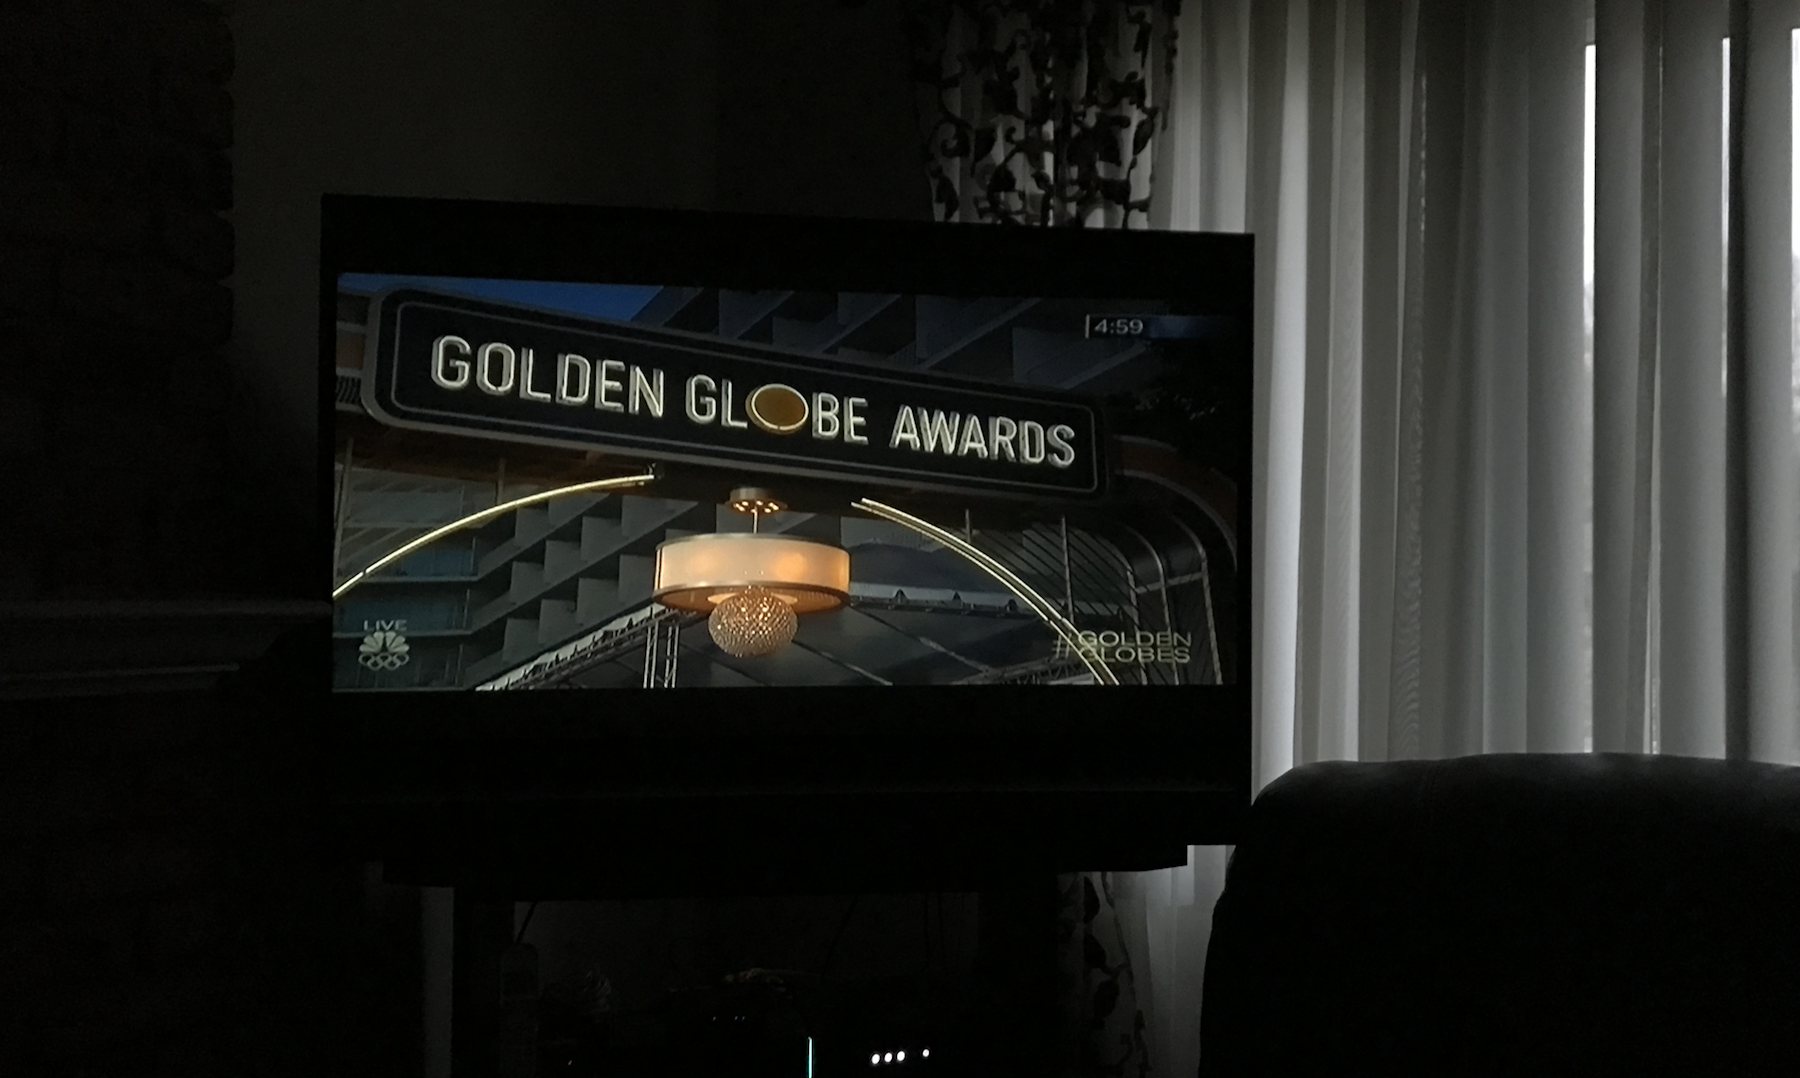 Why did everyone wear black to the Golden Globes?